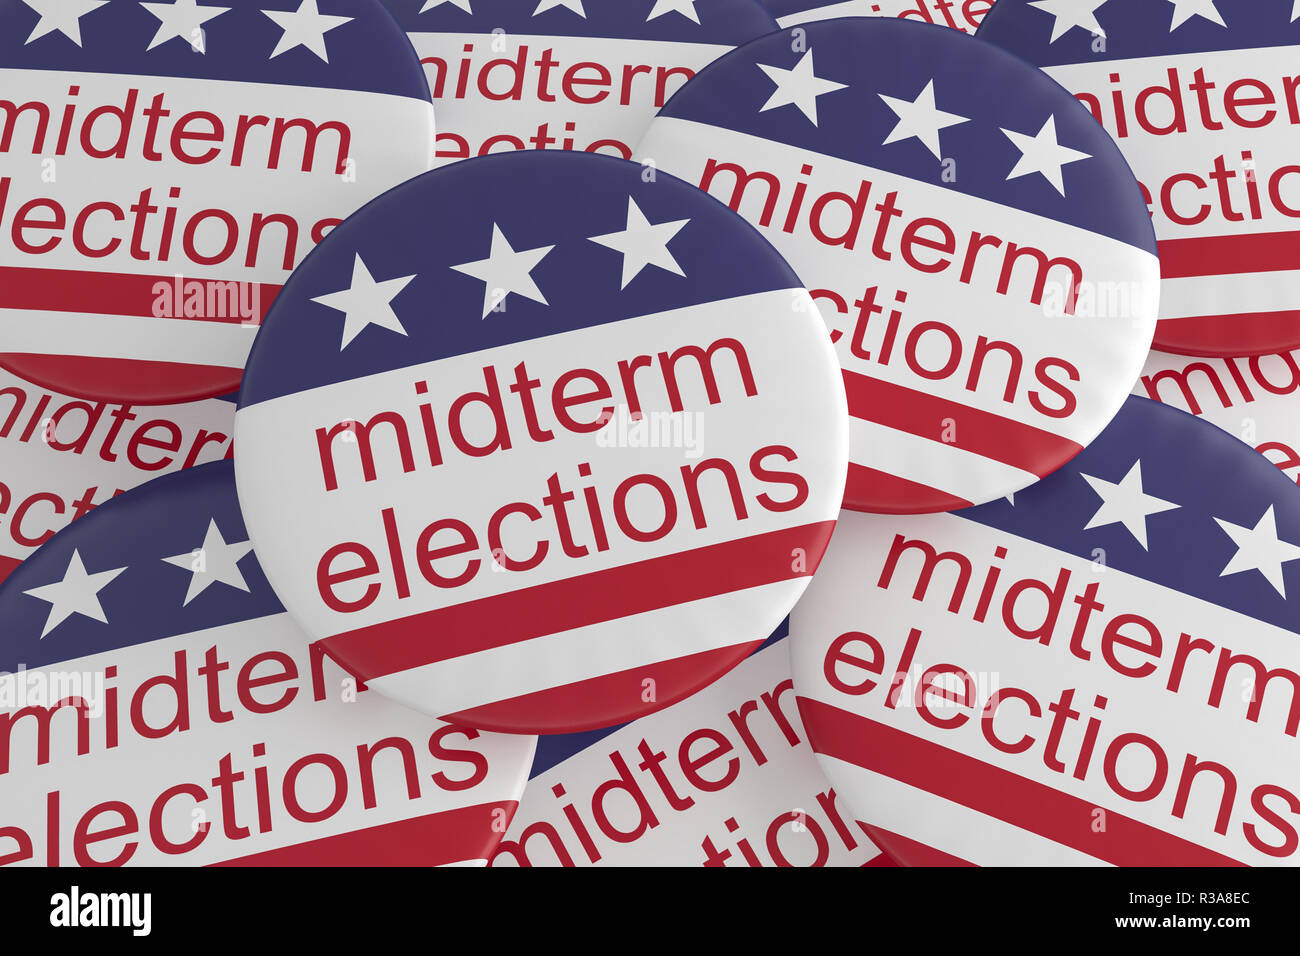 USA Politics News Badges: Pile of Midterm Elections Buttons With US Flag, 3d illustration - Stock Image